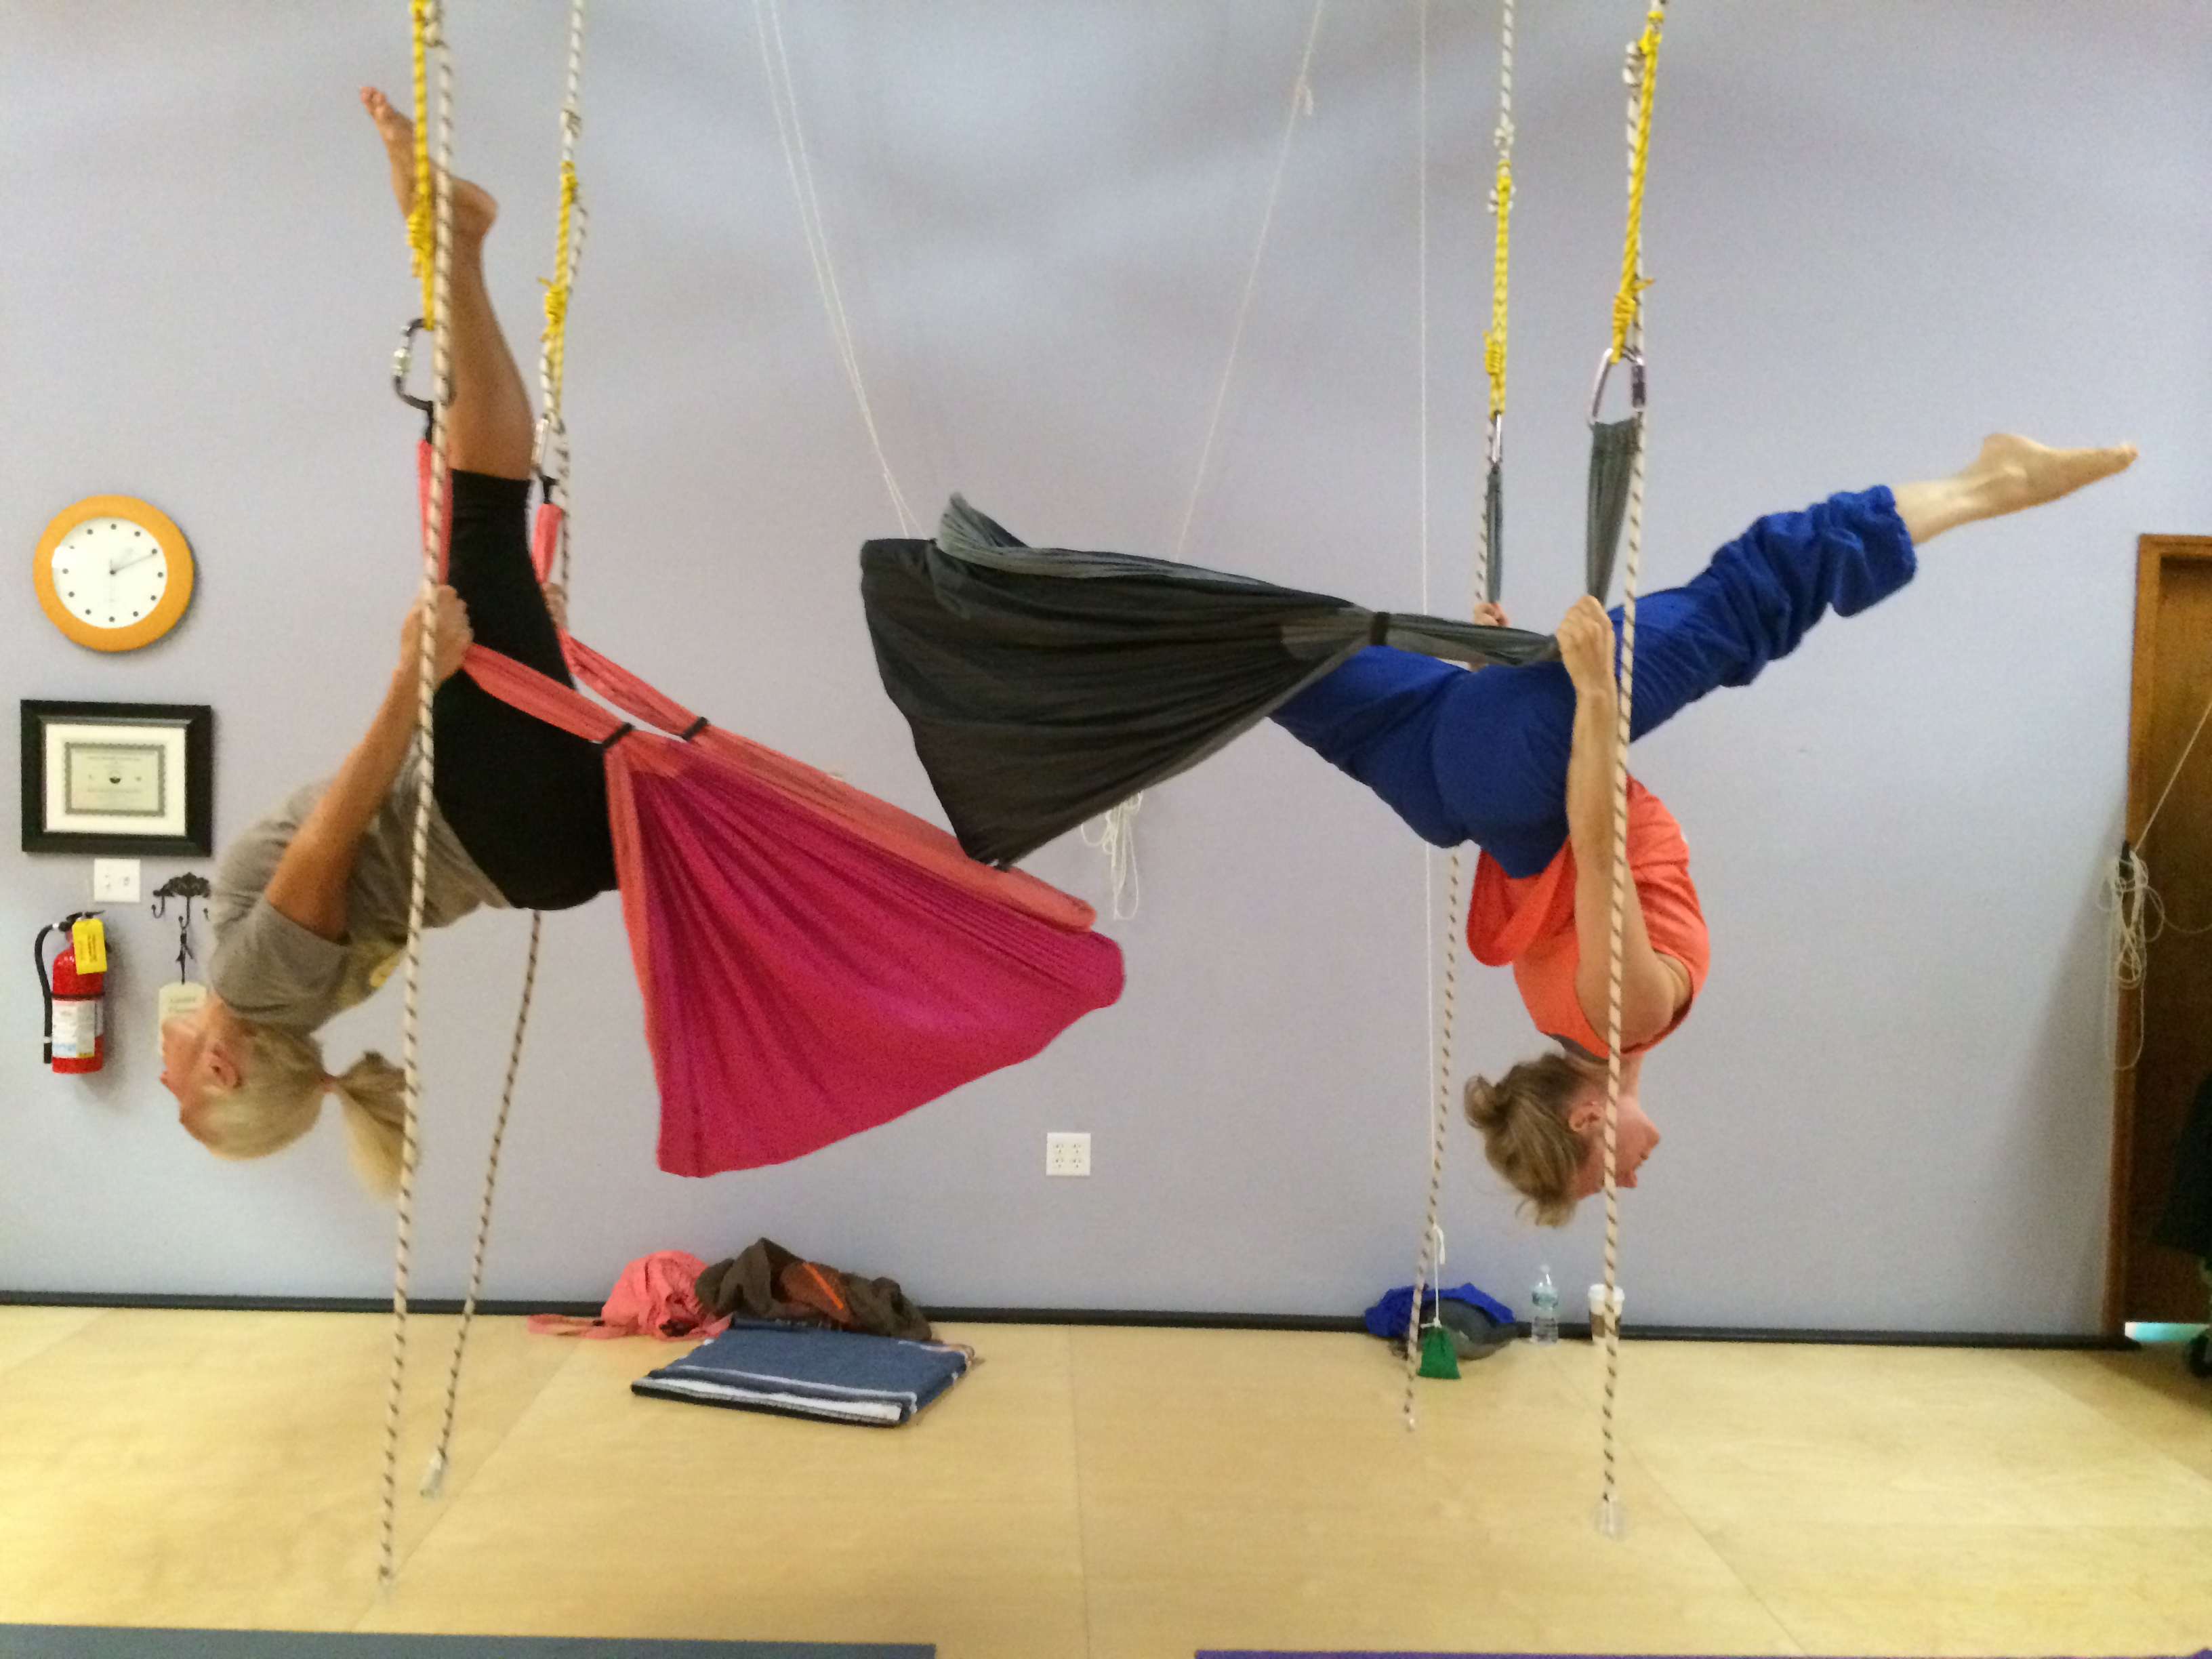 Aerial Yoga - The Workshop